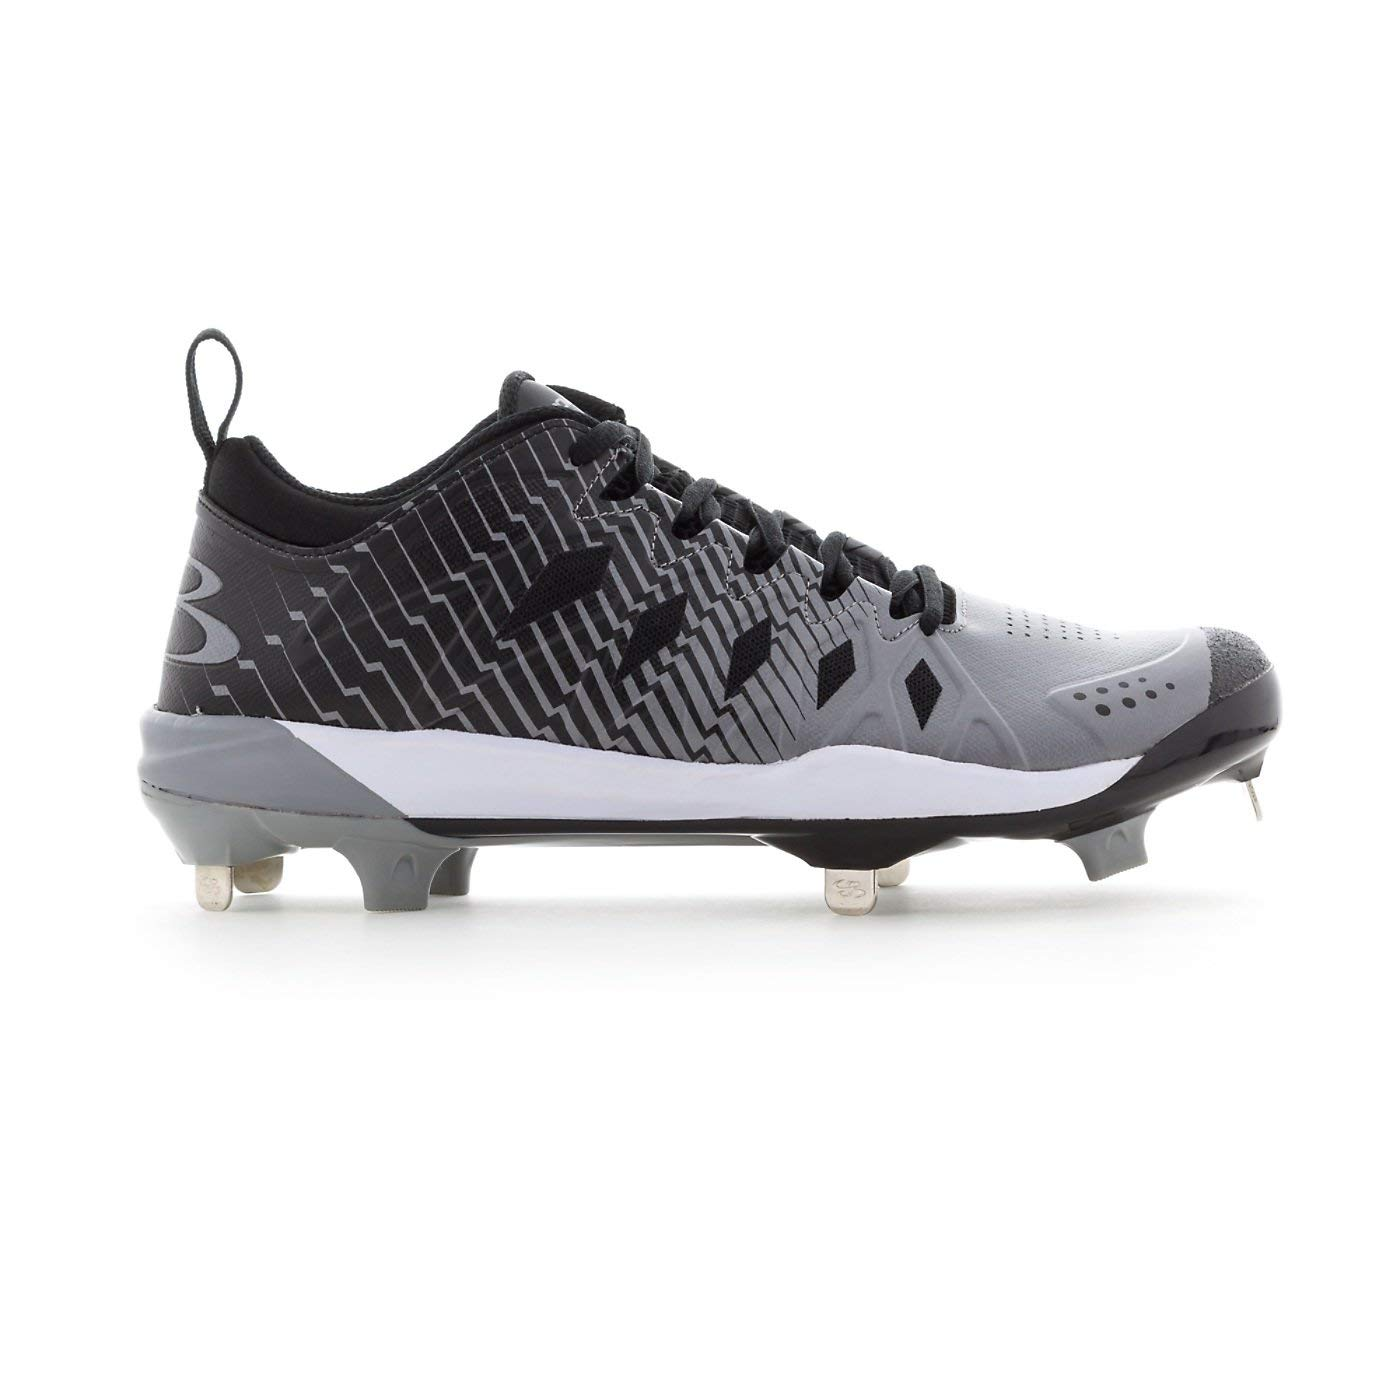 Cheap Boombah Cleats For Youth, find